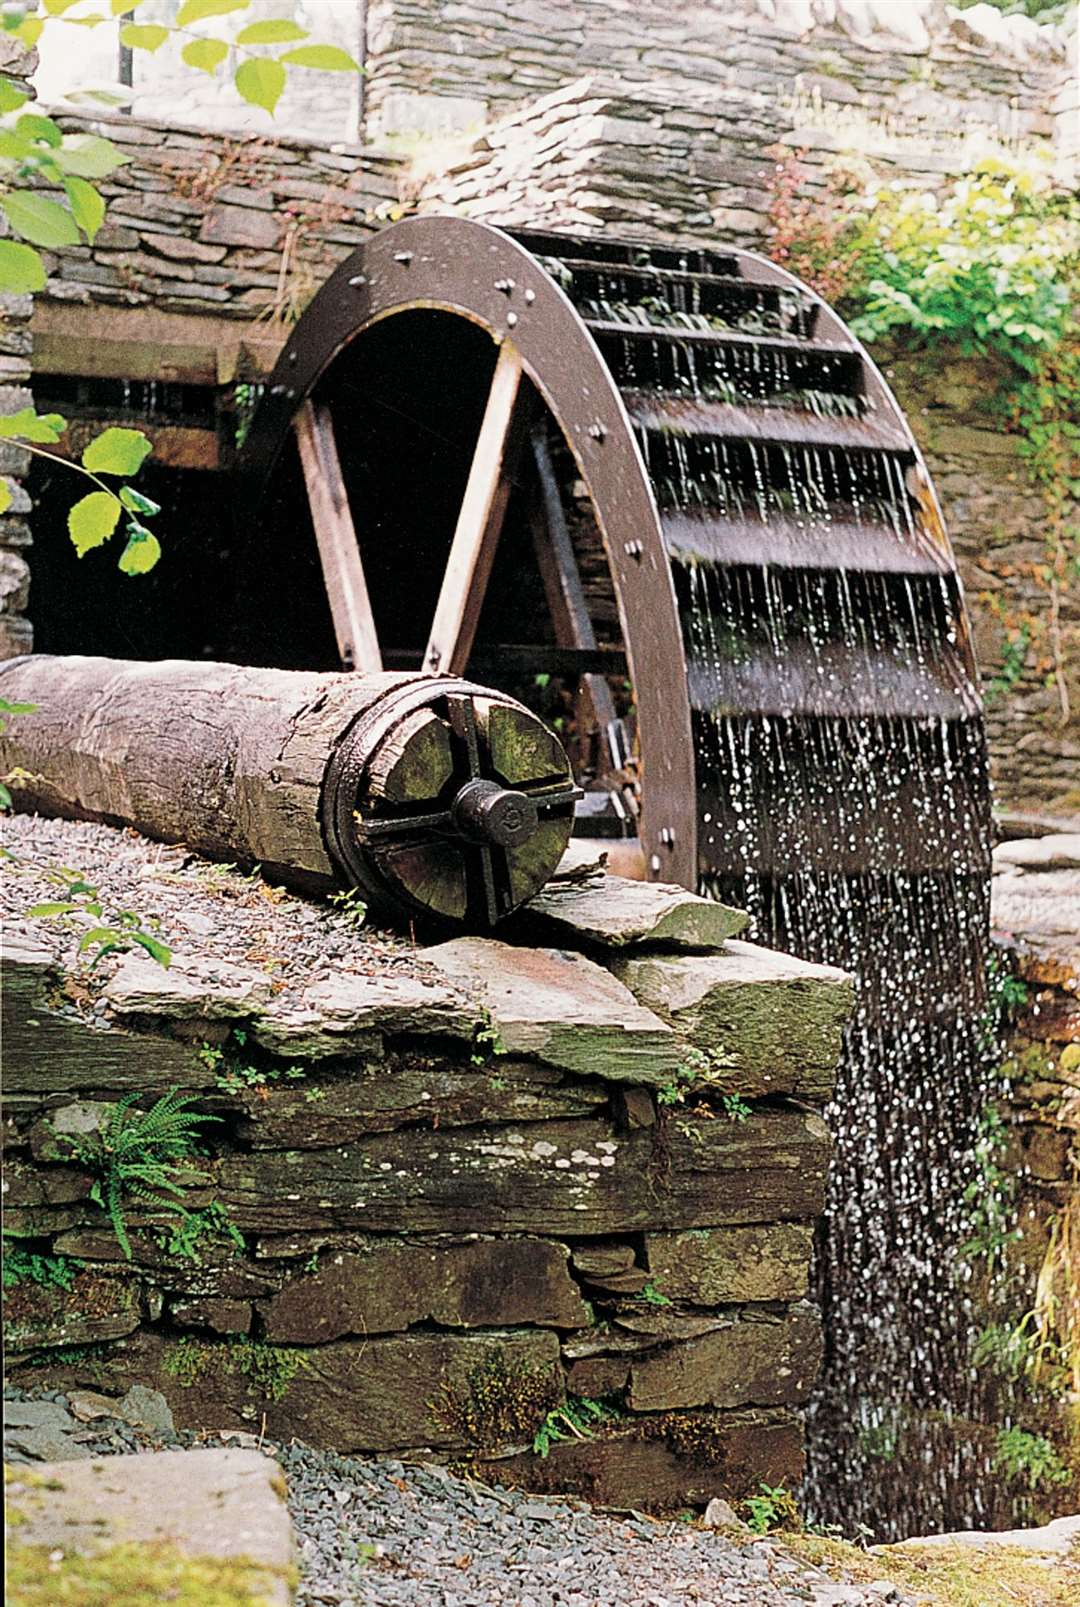 The waterwheel in action.